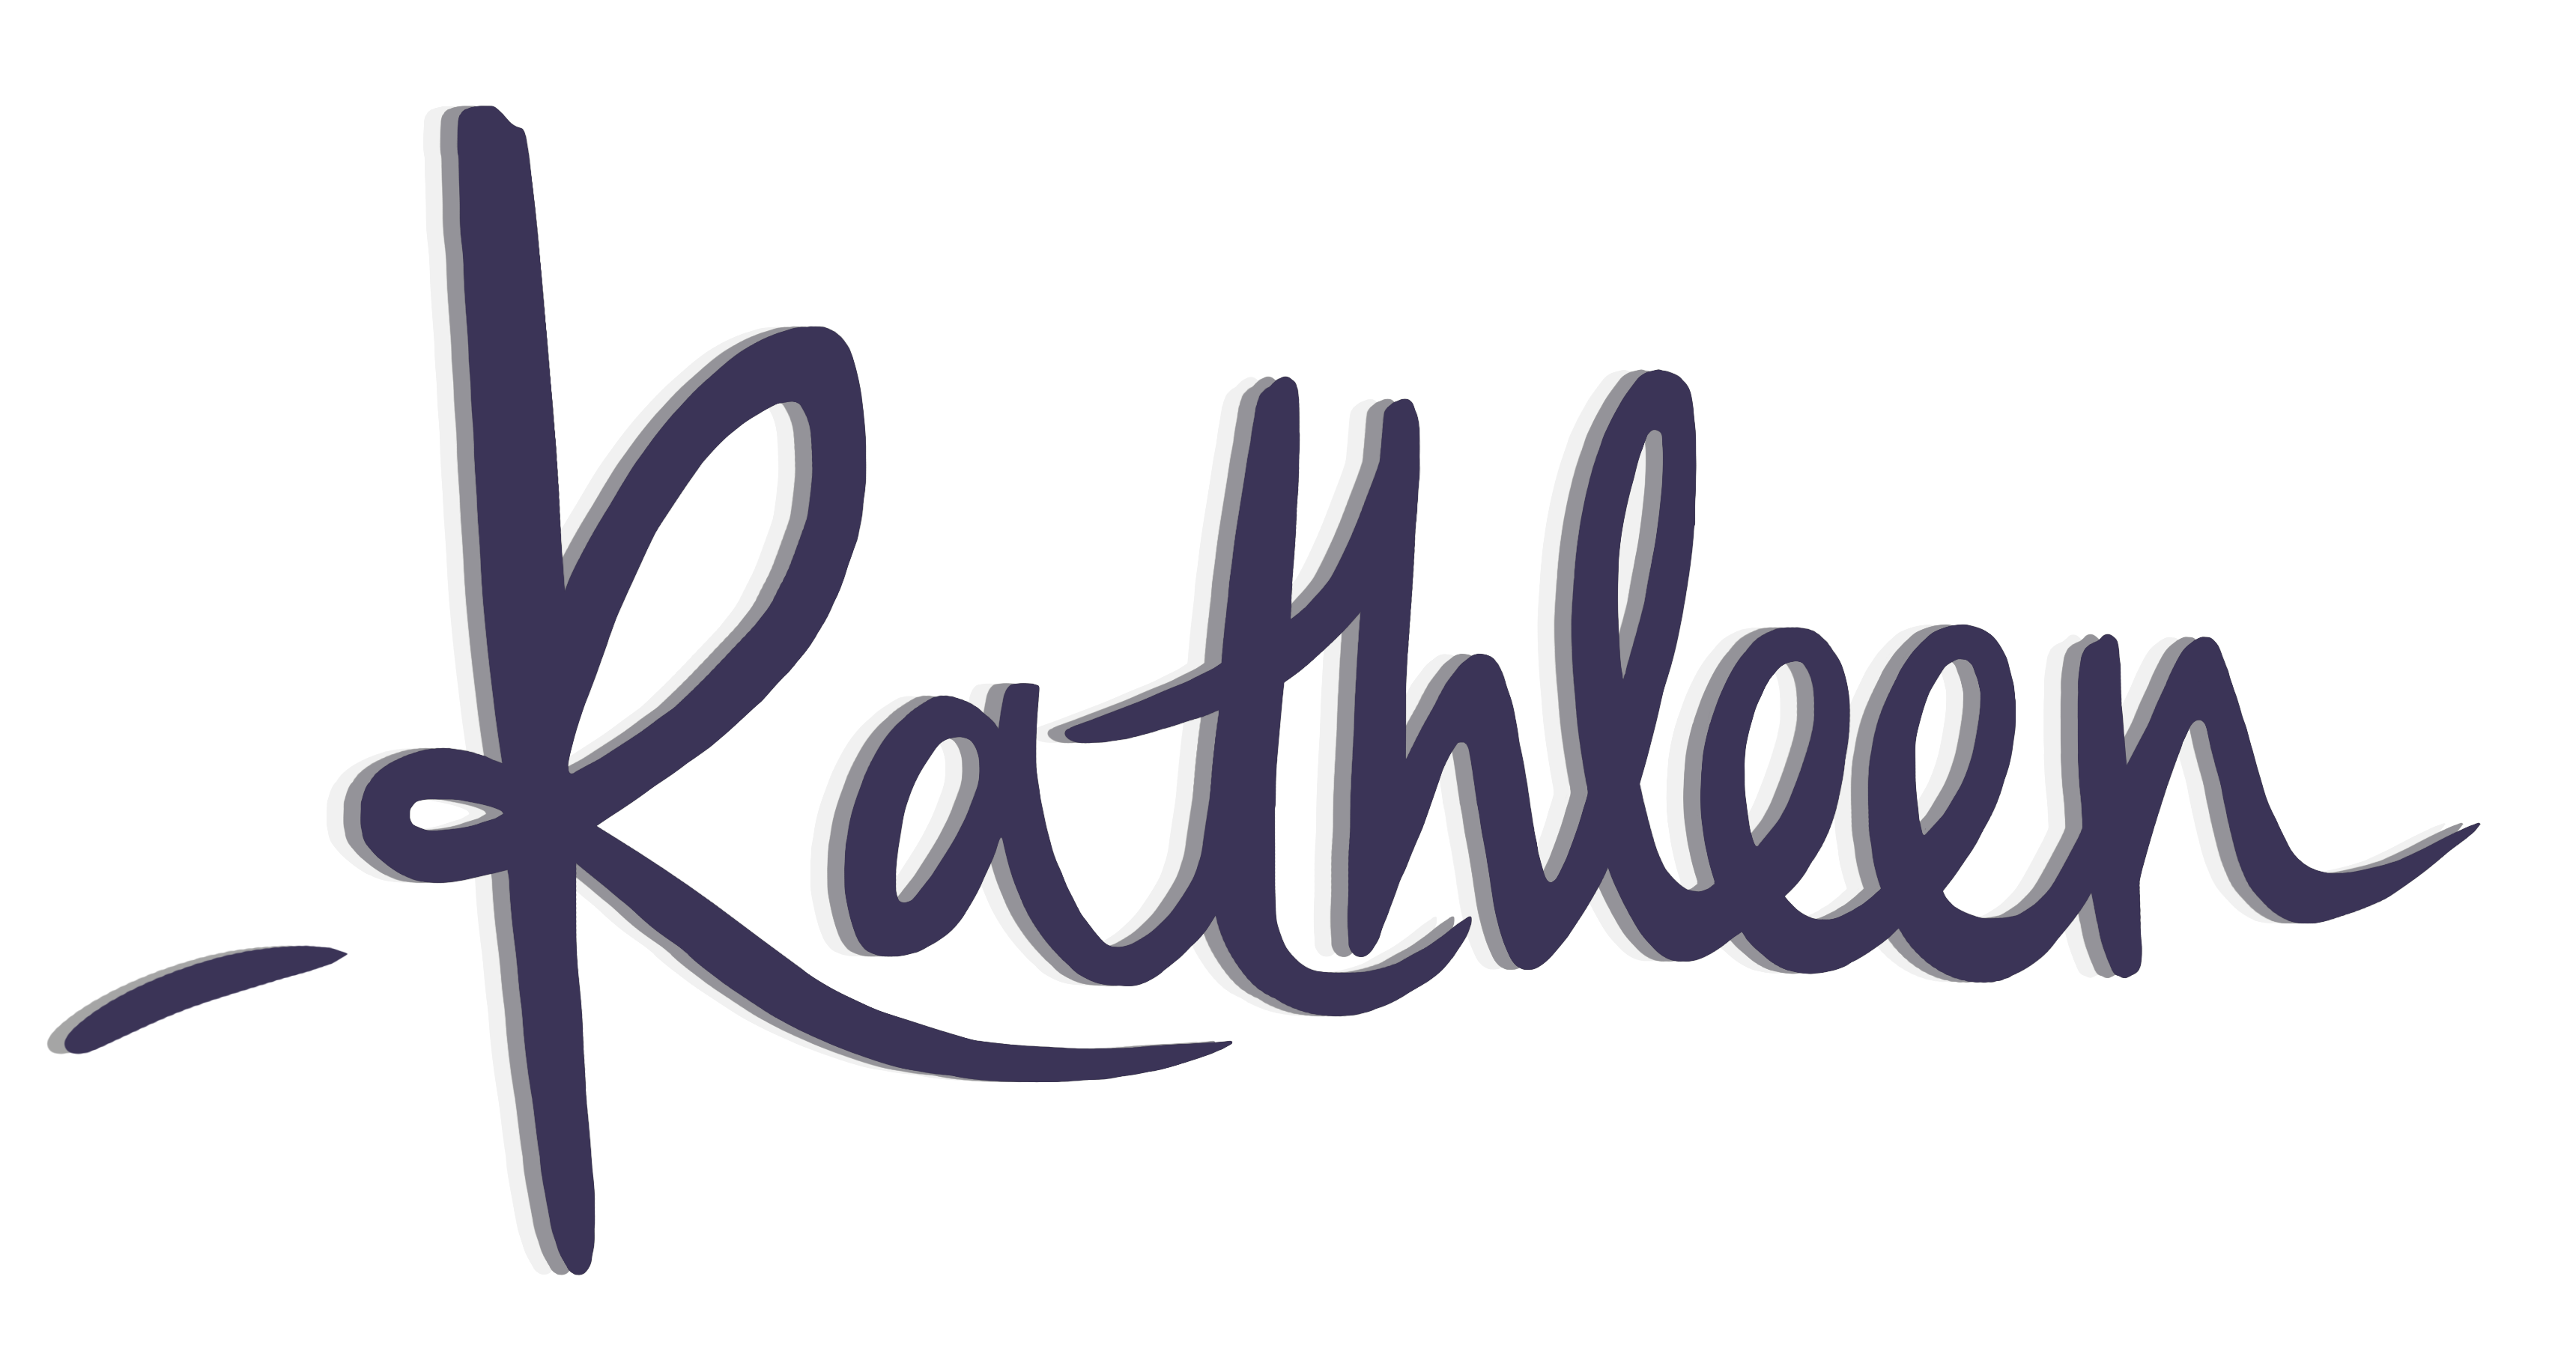 kathleen signature with dash